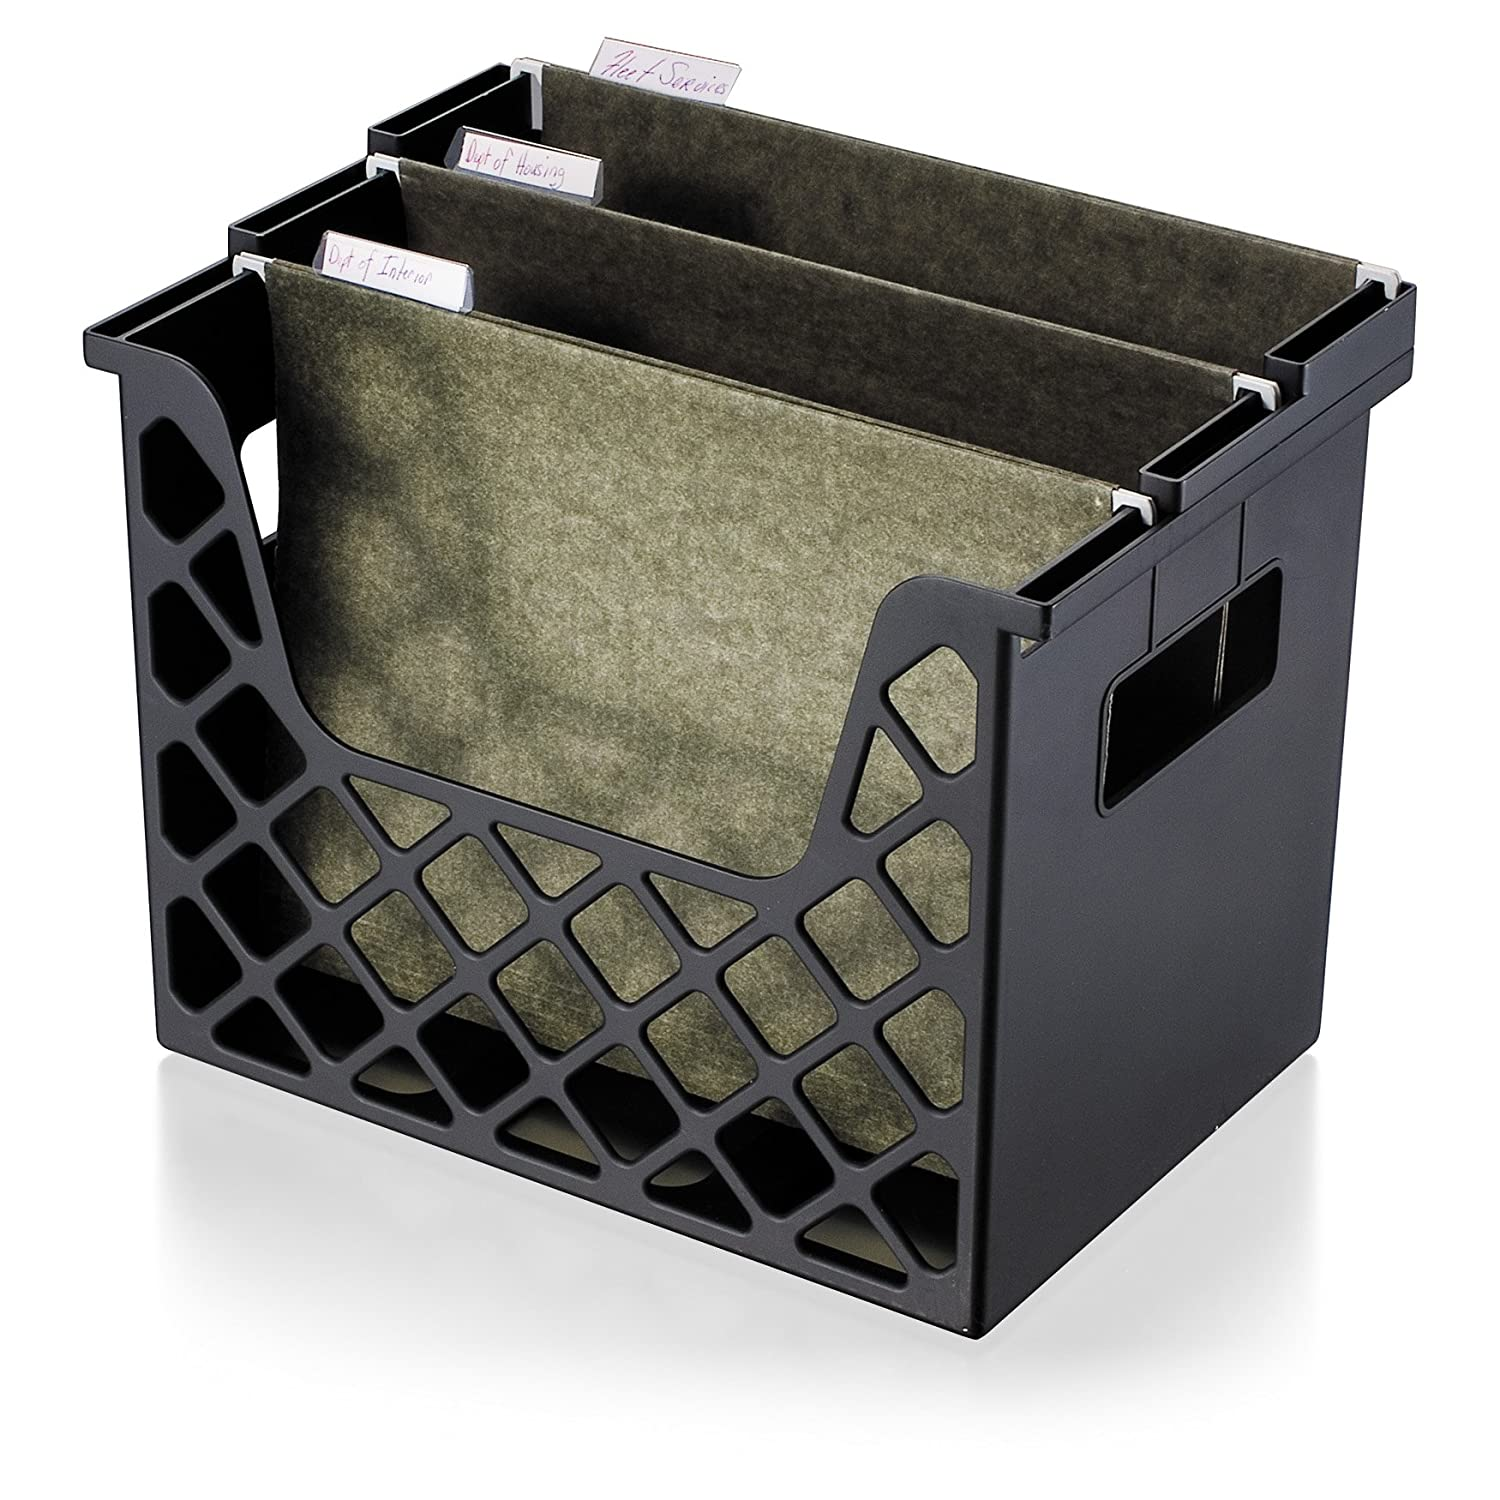 OfficemateOIC Recycled Desktop File Organzier, Black, 1 Organizer (26162) Officemate OIC